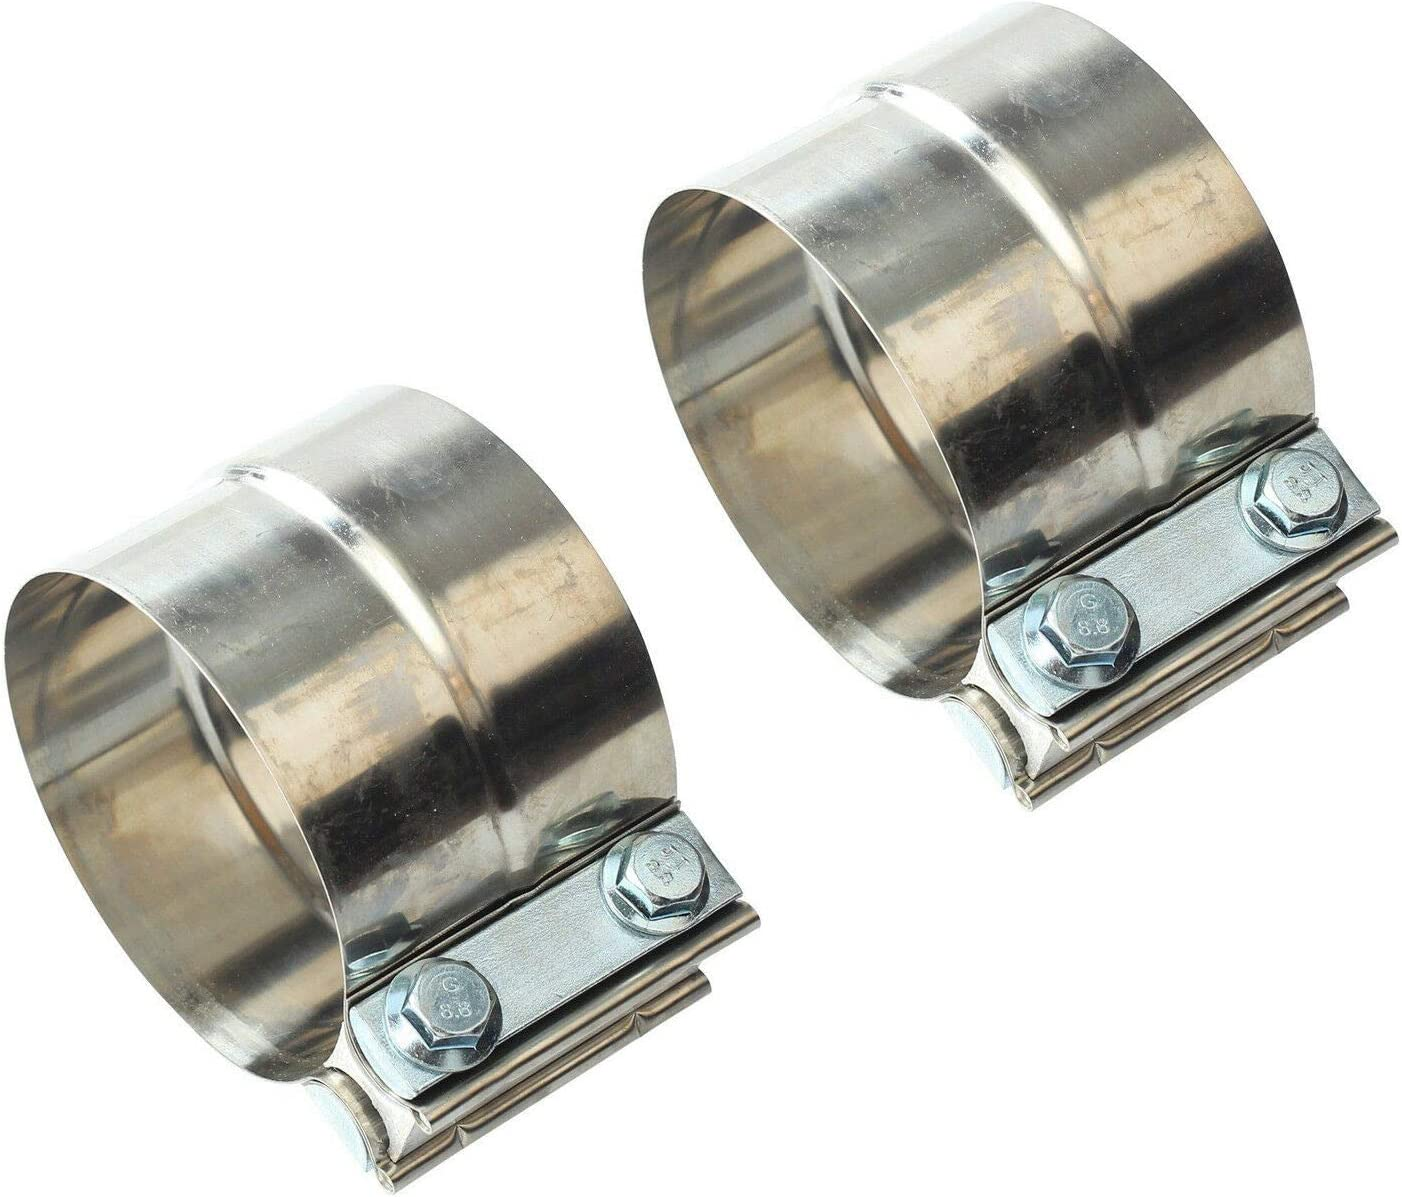 SUPERFASTRACING Special Campaign New York Mall 2pcs 2.5inch T304 Clamps Band Stainless Exhaust